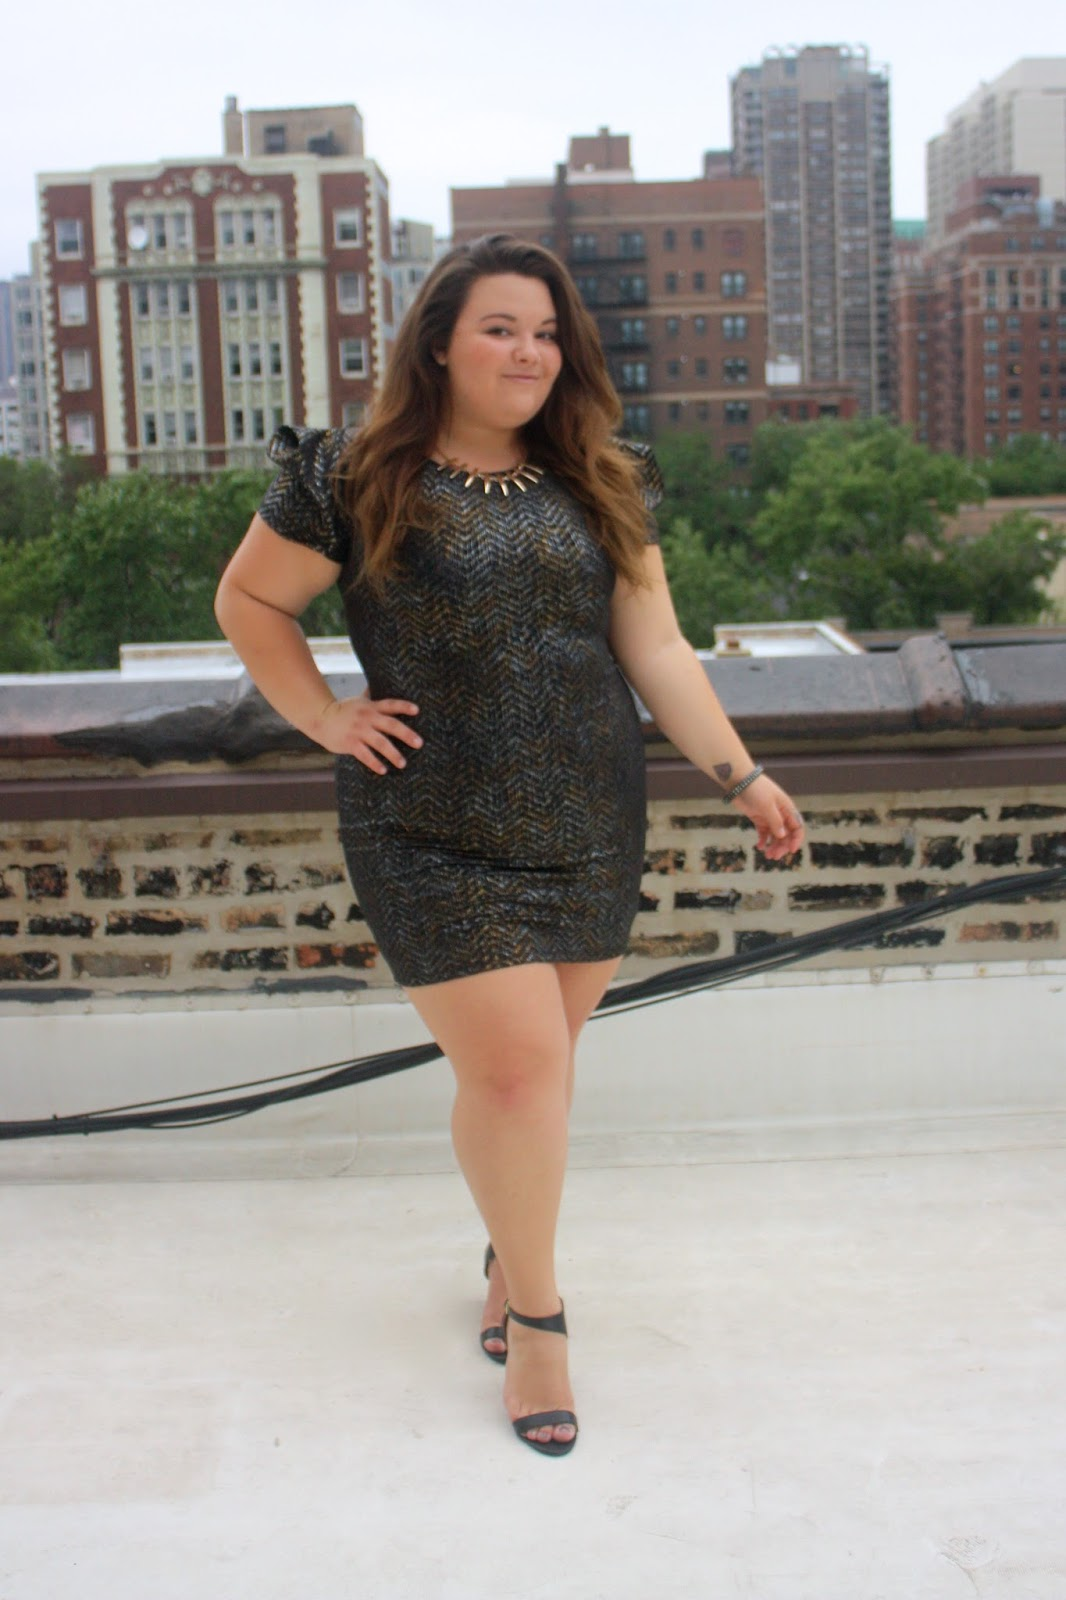 natalie craig, stylzoo, amazon, plus size fashion, ps fashion, fashion blogger, plus size fashion blogger, natalie in the city, sexy, curvy women, dress, party dress, chicago skyline